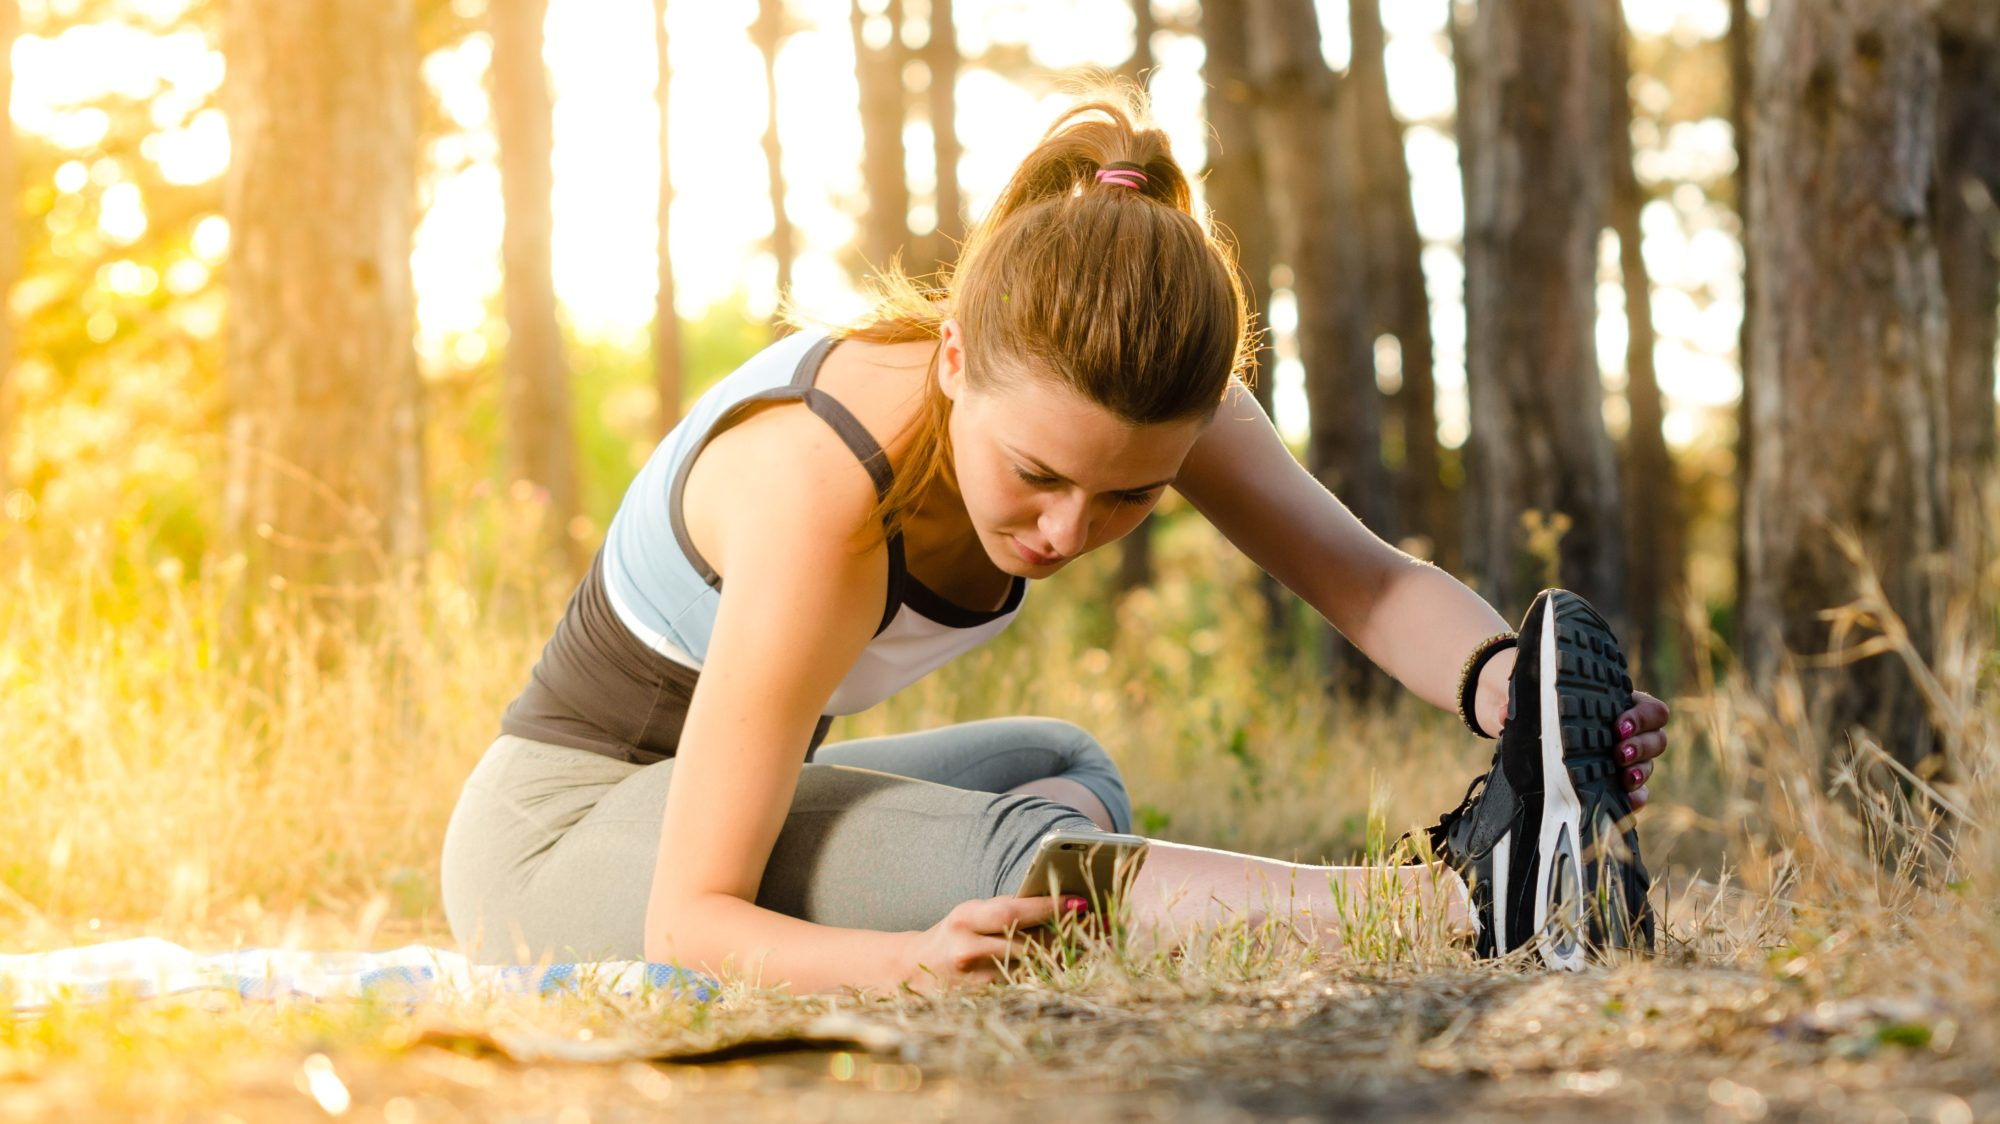 A young woman sitting down stretching her leg while reading an article on HCG and weight loss on her phone before going for a run on an outdoor trail through the woods at sunrise.